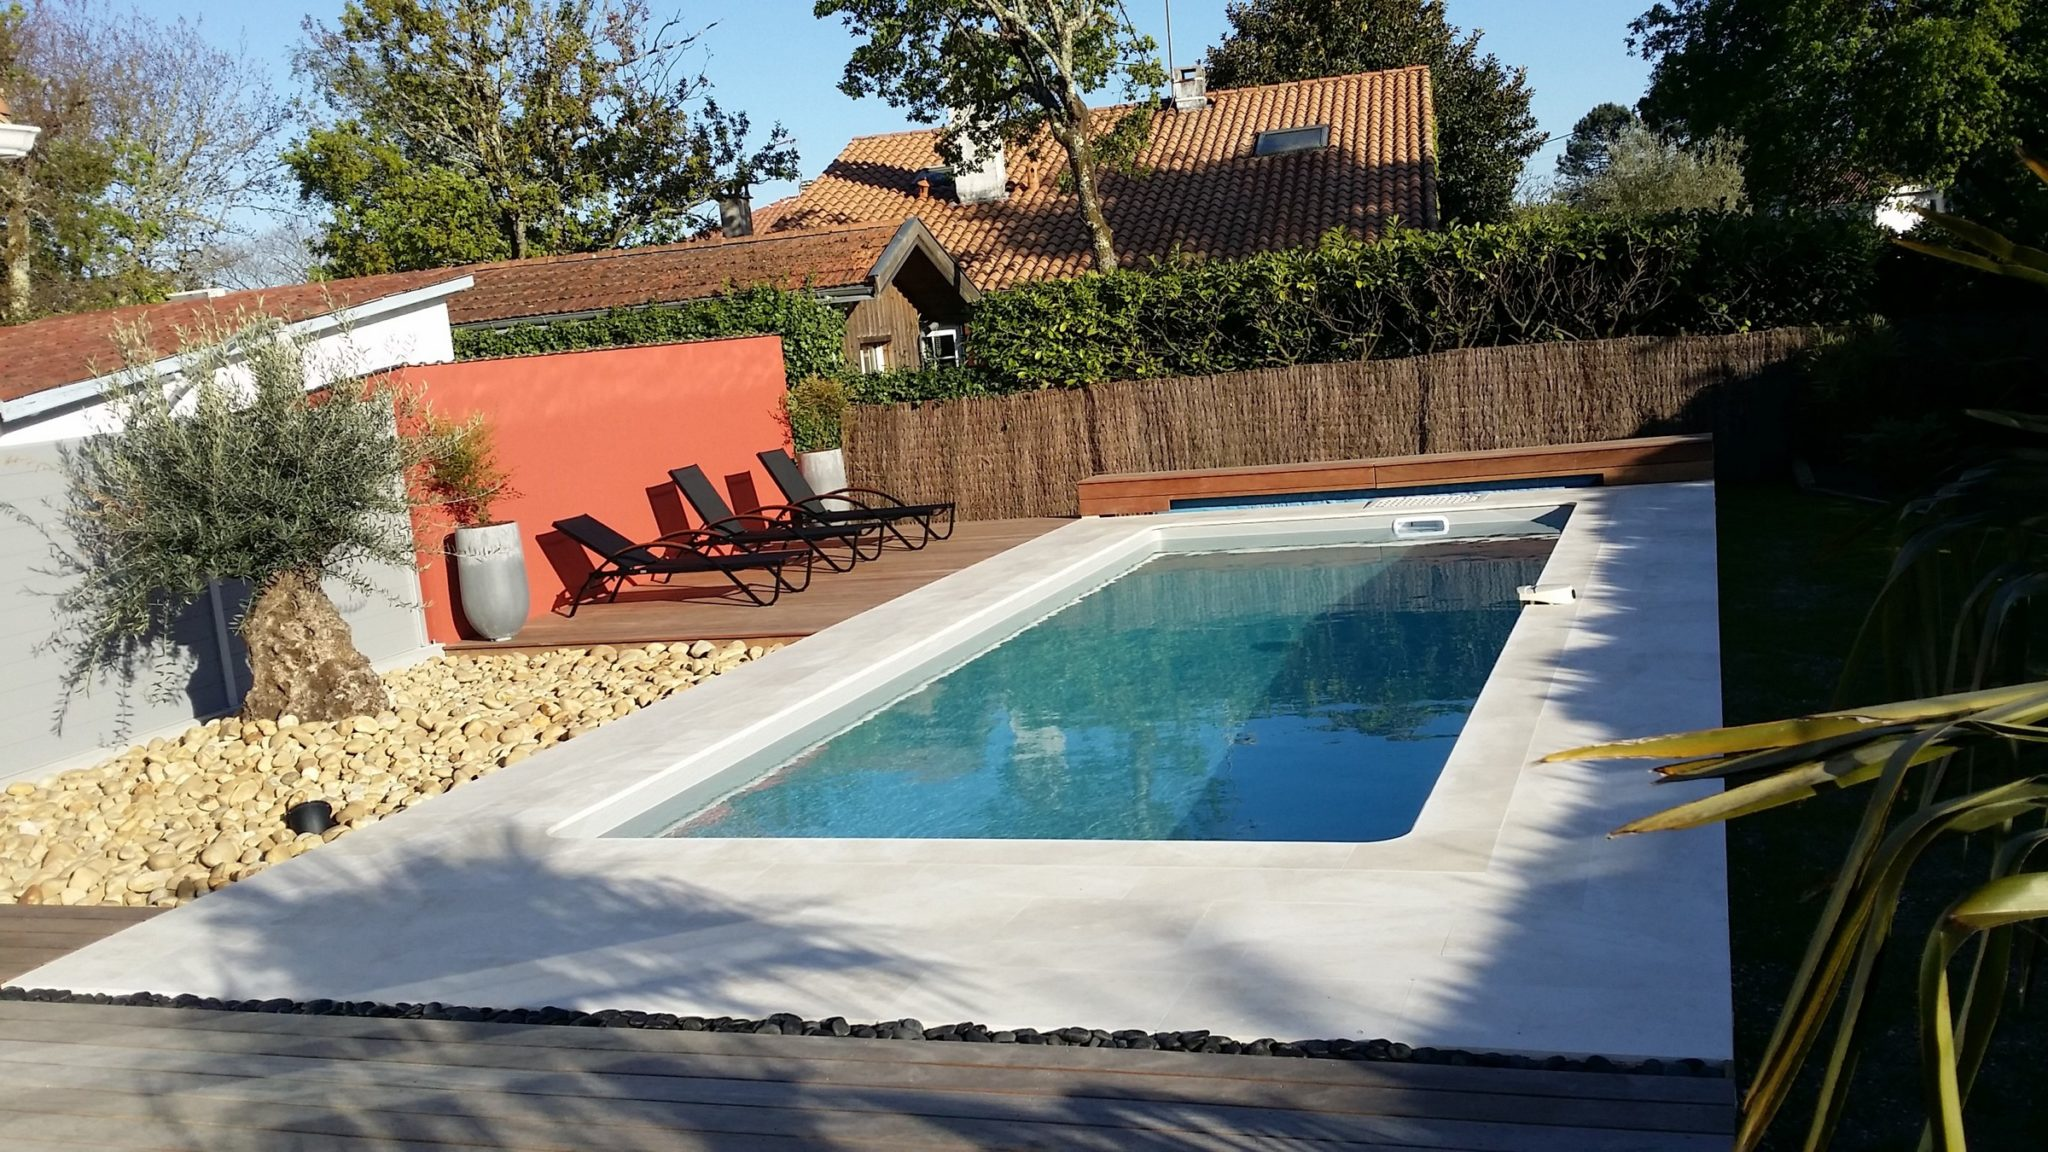 Piscine avec bloc de filtration reference piscine for Constructeur piscine 17